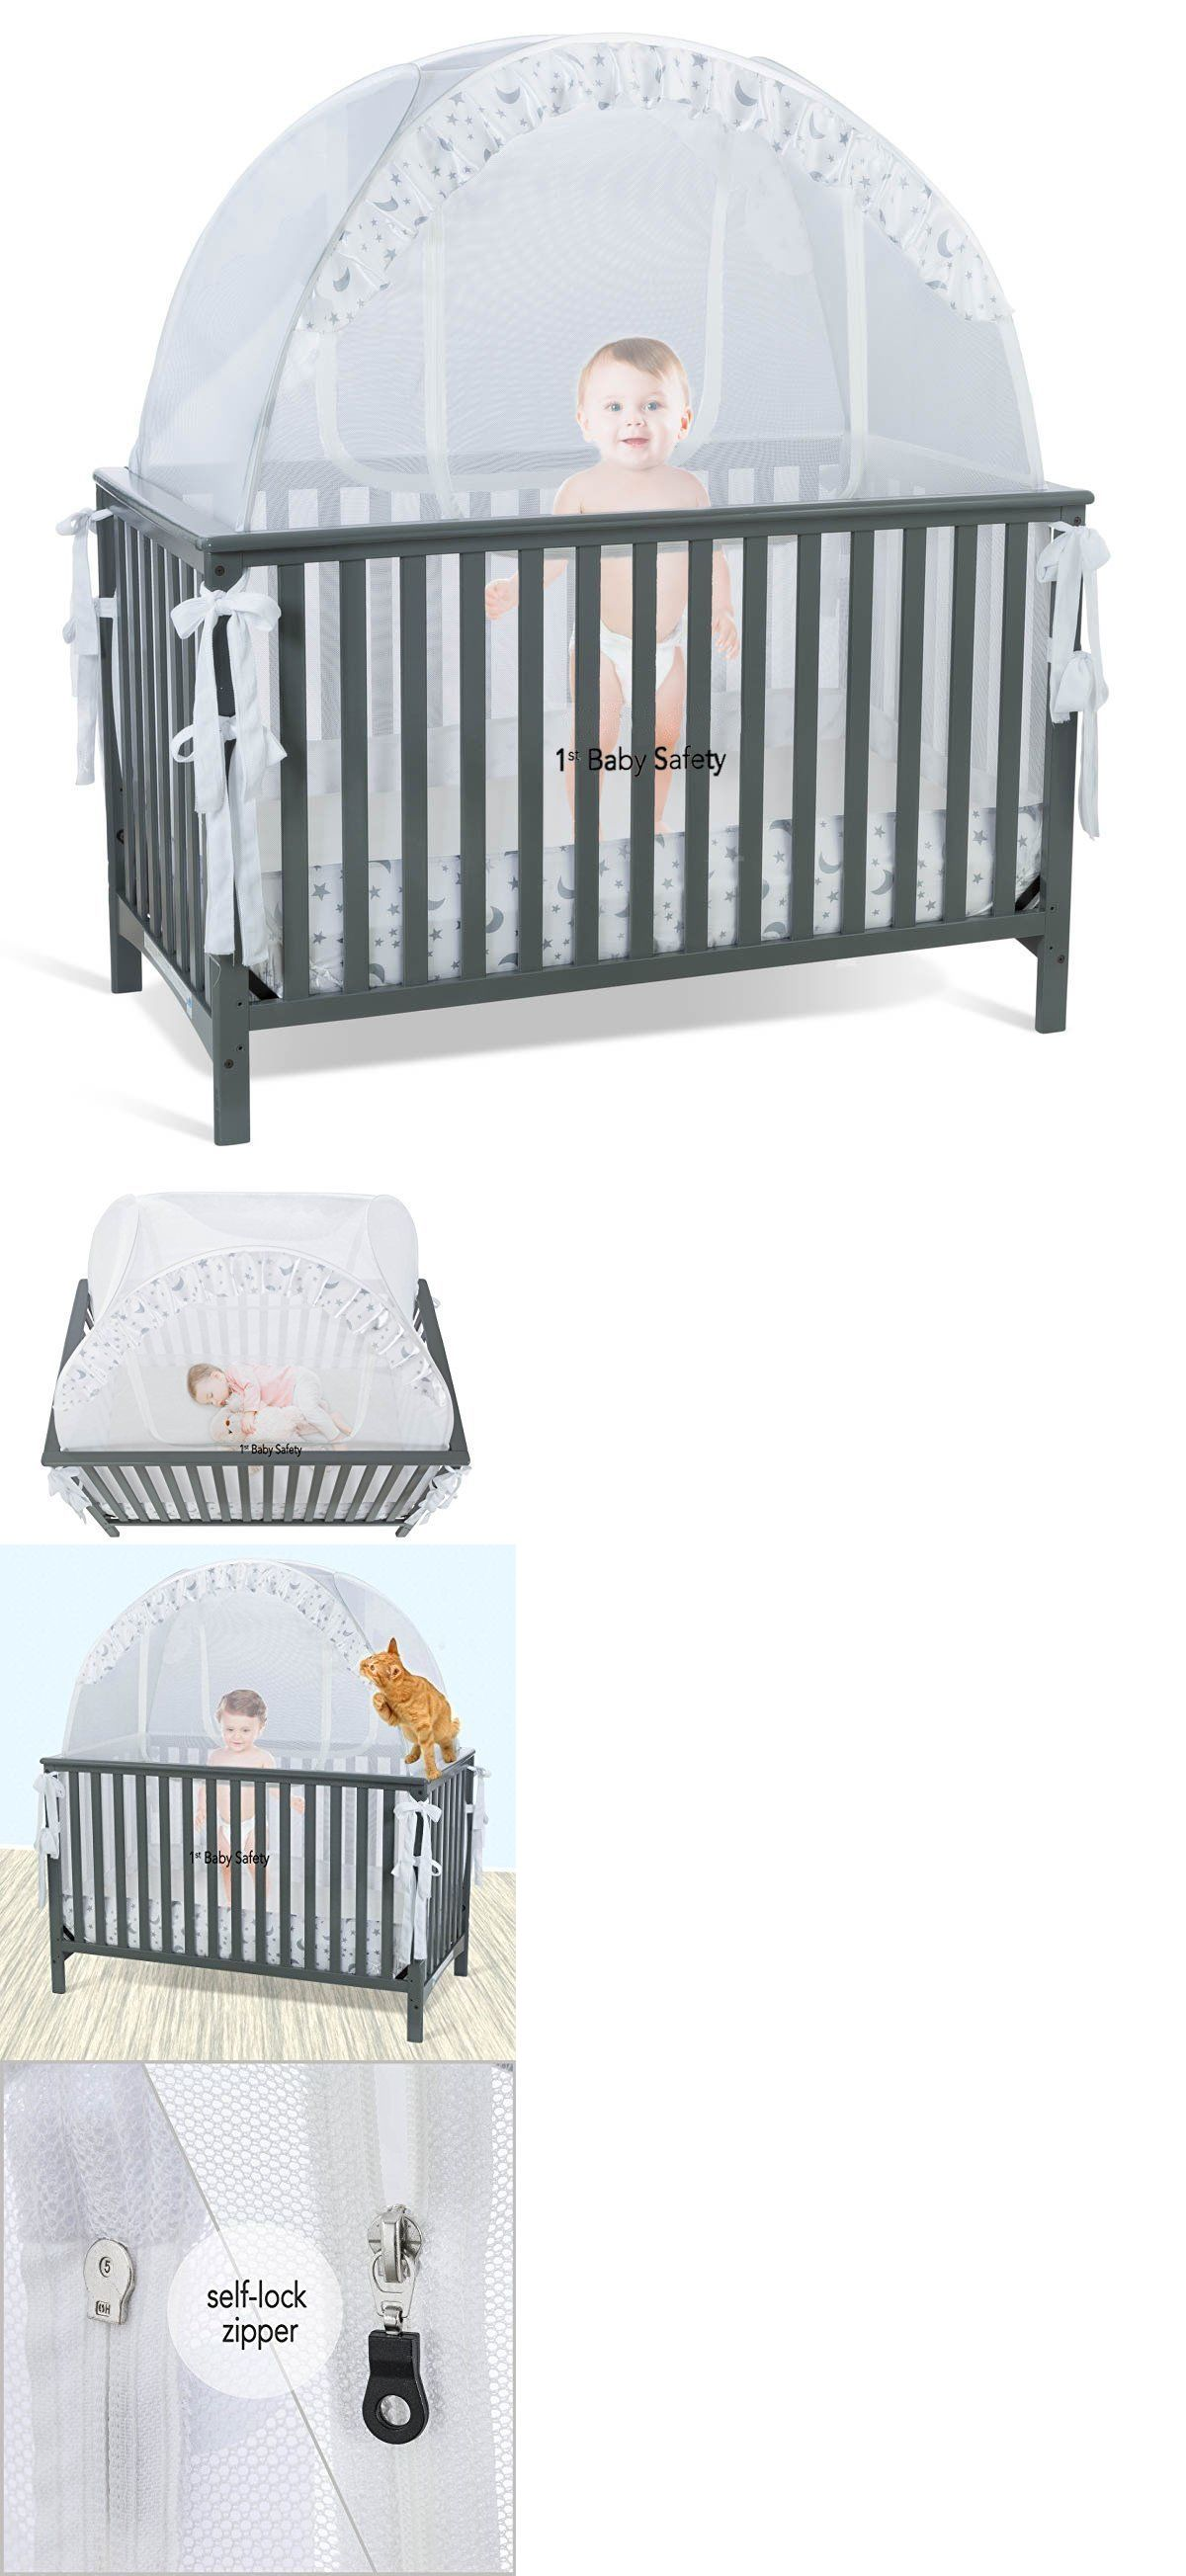 Canopies and Netting 180905 Baby Crib Tent Safety Net Pop Up Canopy Cover - Never  sc 1 st  Pinterest & Canopies and Netting 180905: Baby Crib Tent Safety Net Pop Up ...